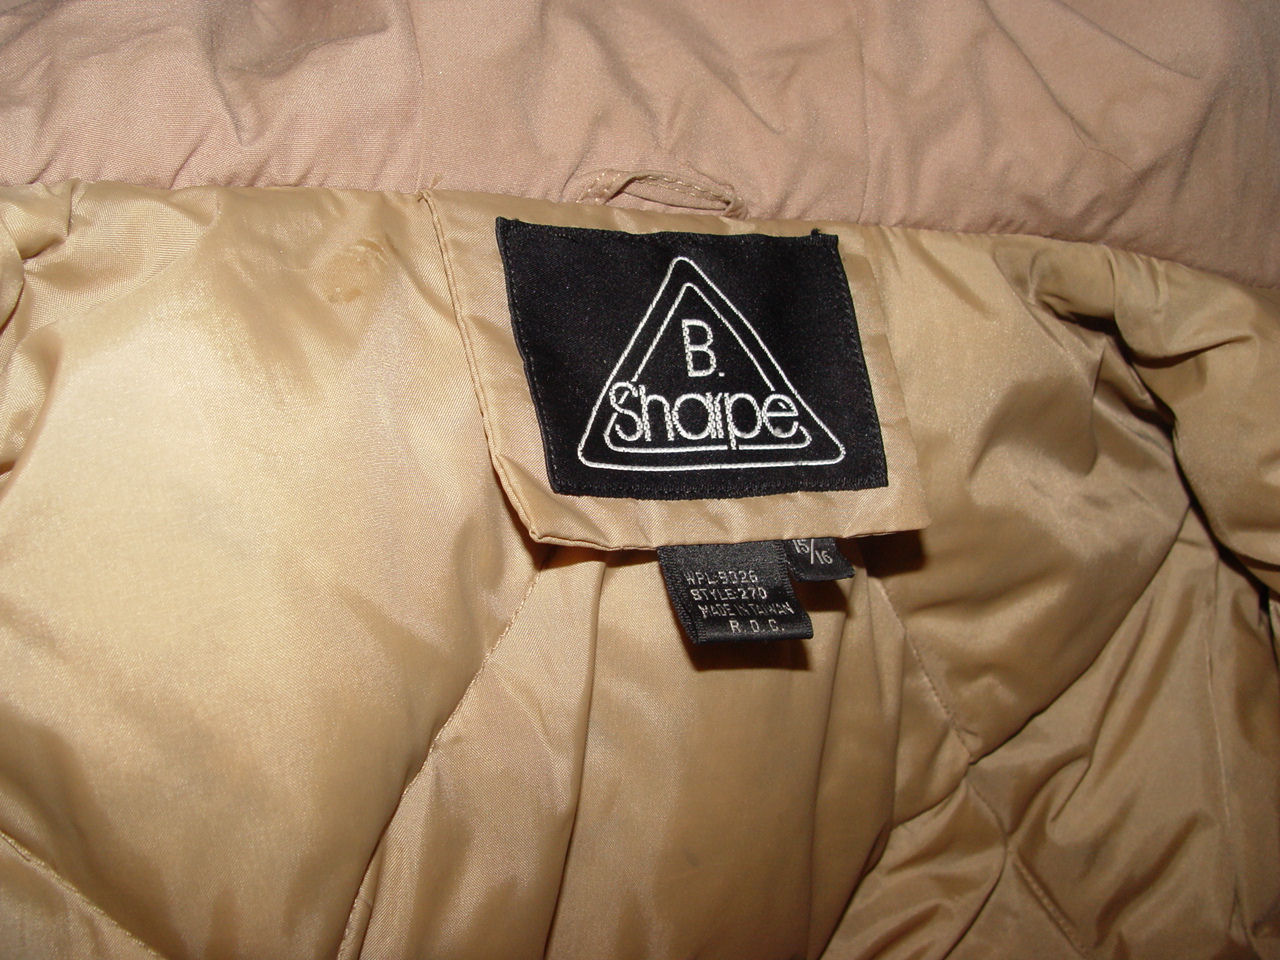 Vintage NOS                                         Insulated Long Parka Hooded                                         Jacket by B. Sharp ~ Tan Winter                                         Outdoor Wear Size 15/16